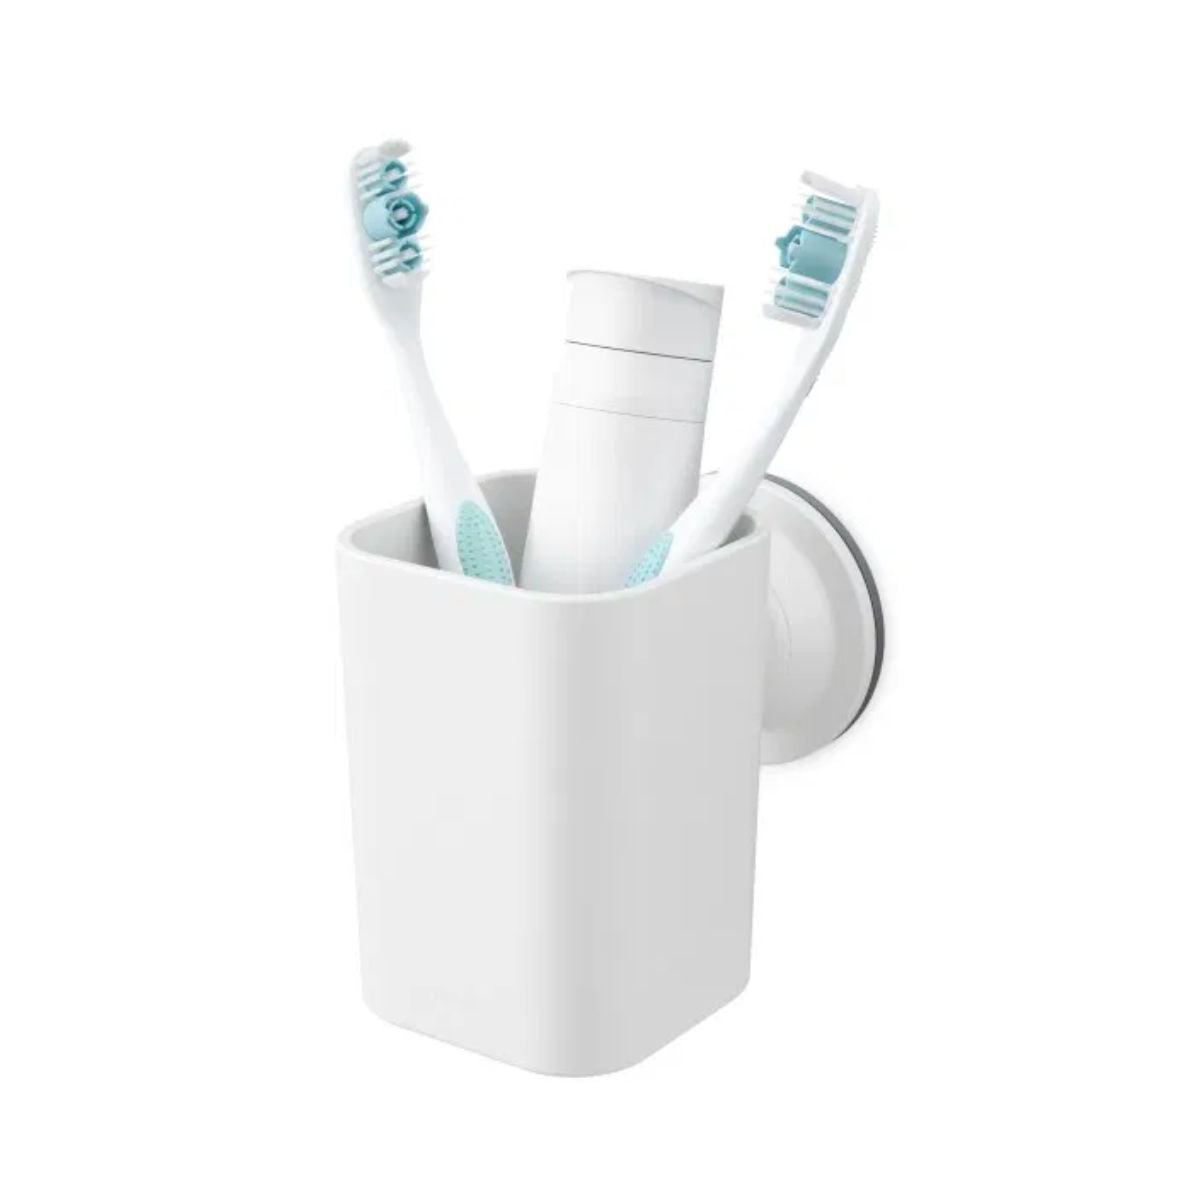 Umbra Flex sure-lock toothbrush holder